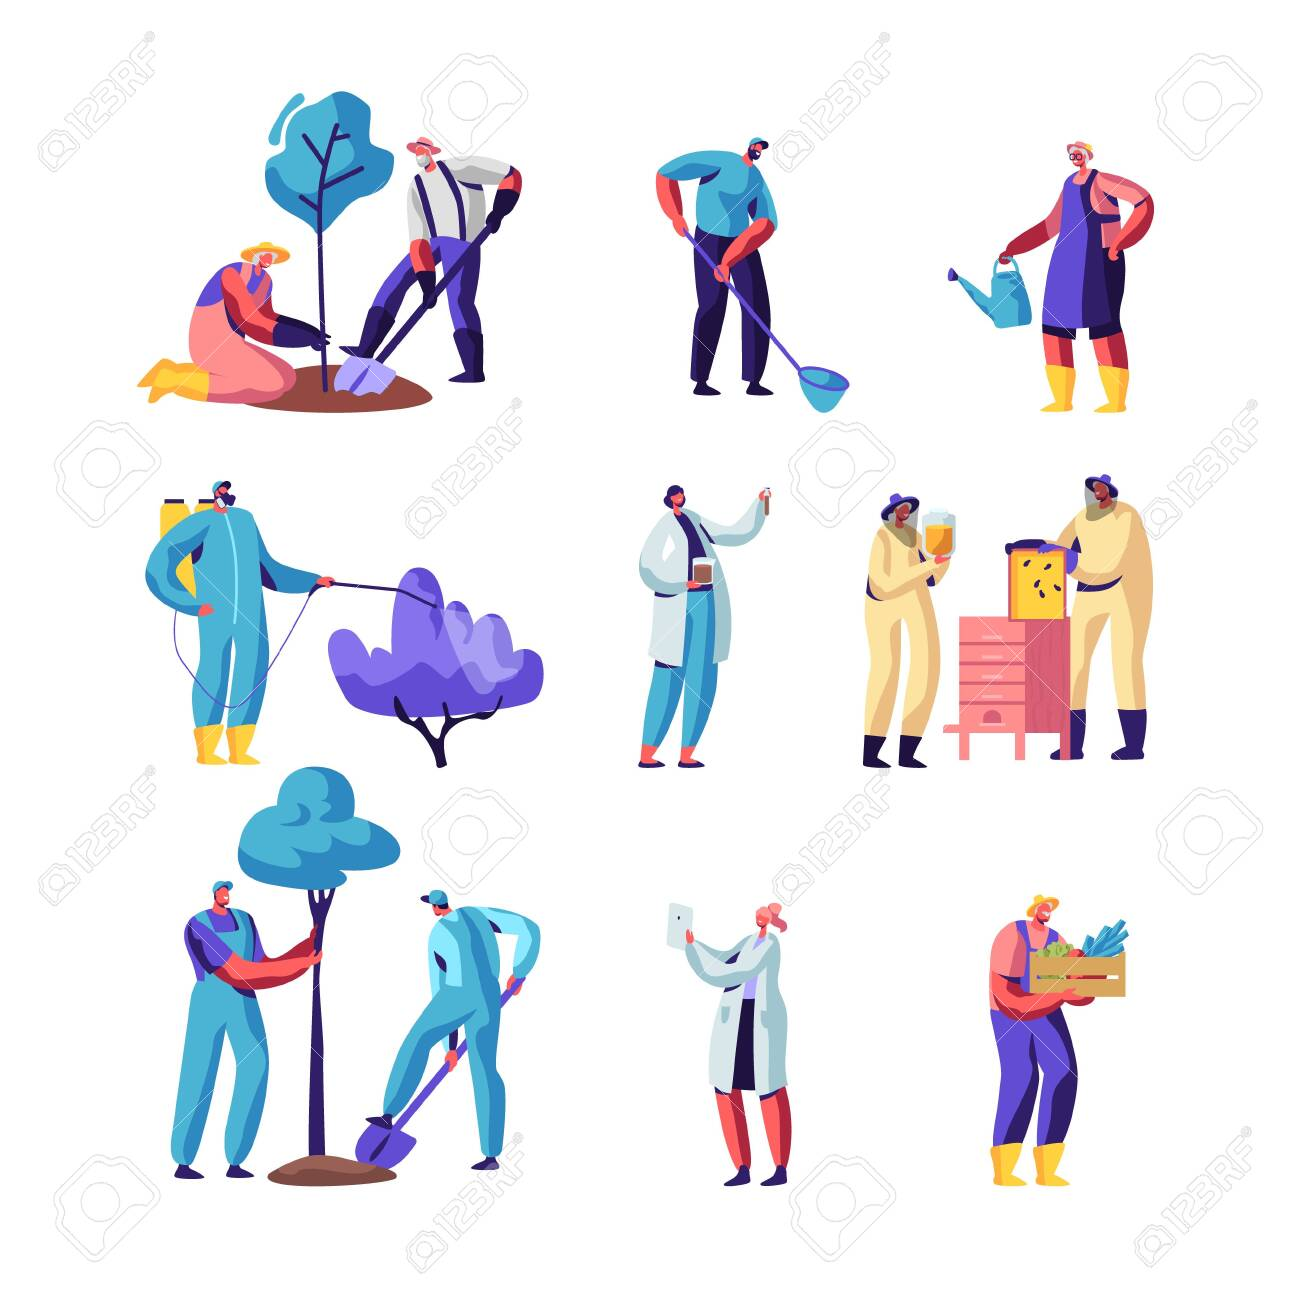 Farmers, Beekeepers, Gardeners Set. Characters Growing and Care of Plants in Garden or Greenhouse, Planting Trees, Collect Crop on Farm, Produce Honey, Seasonal Work, Cartoon Flat Vector Illustration - 128442885